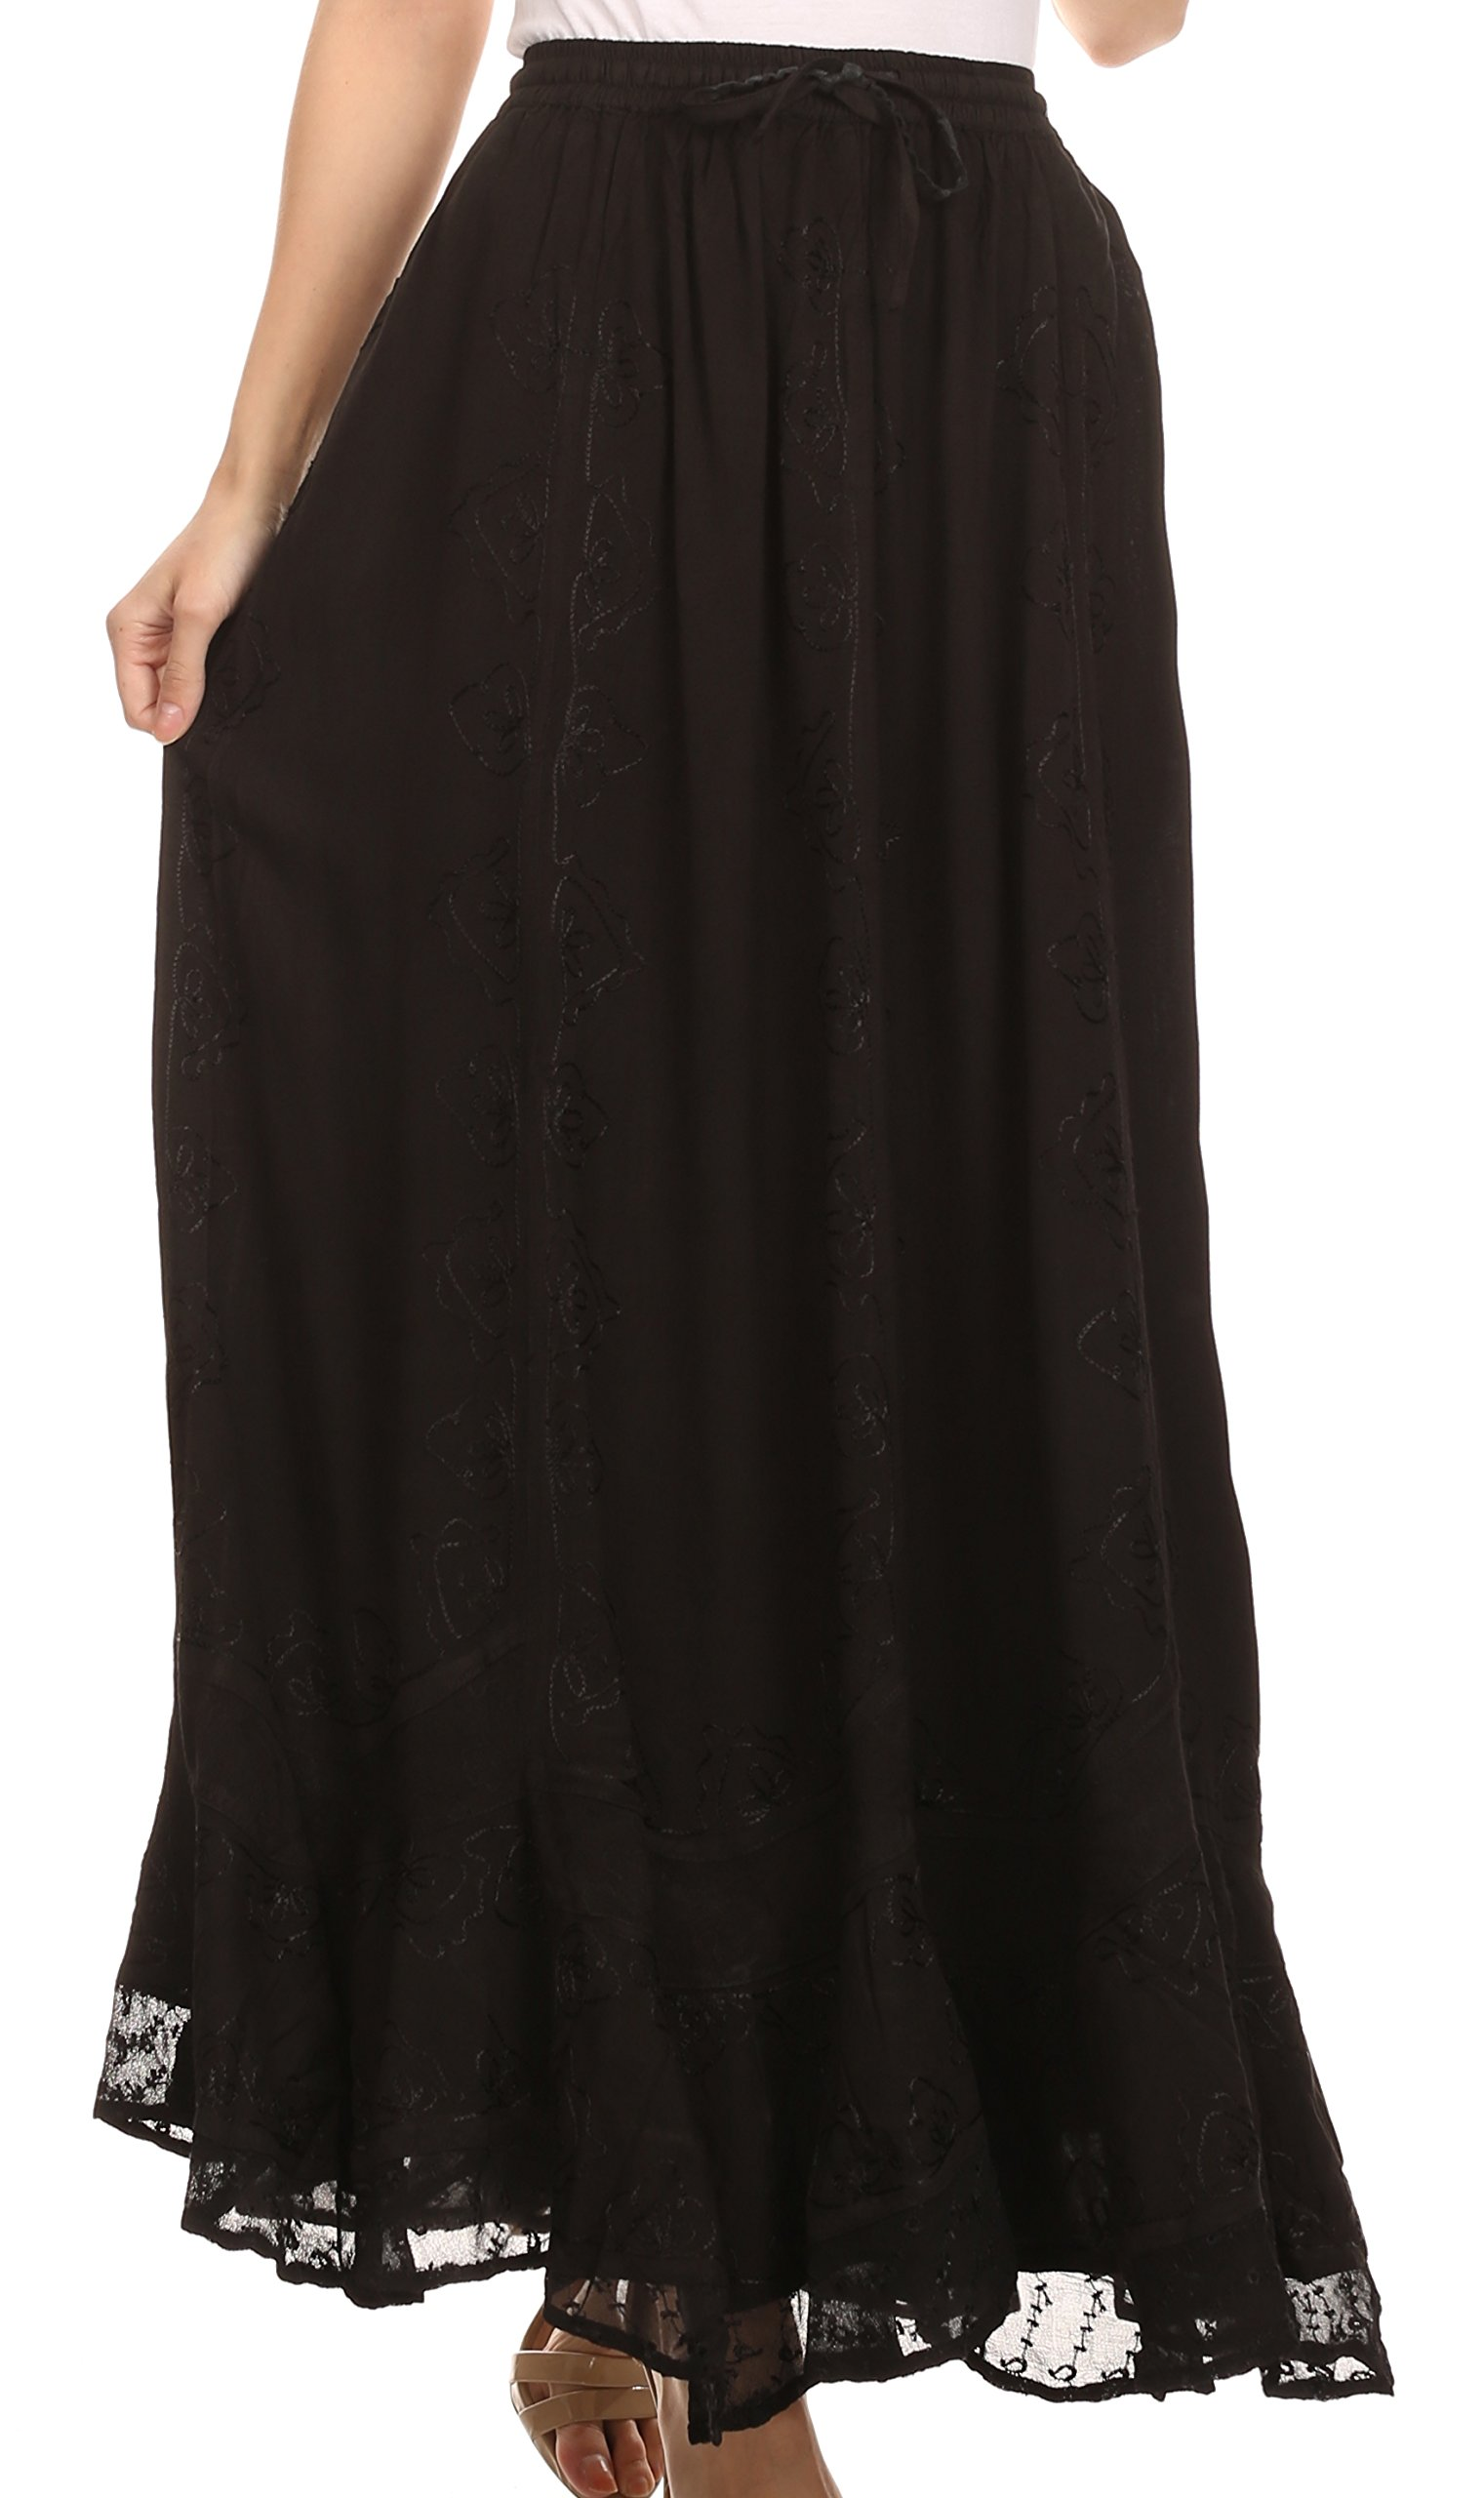 Sakkas SK16319 - Jaclyn Adjustable Skirt With Lace Embroidered Trim And Detailed Embroidery - Black - OS